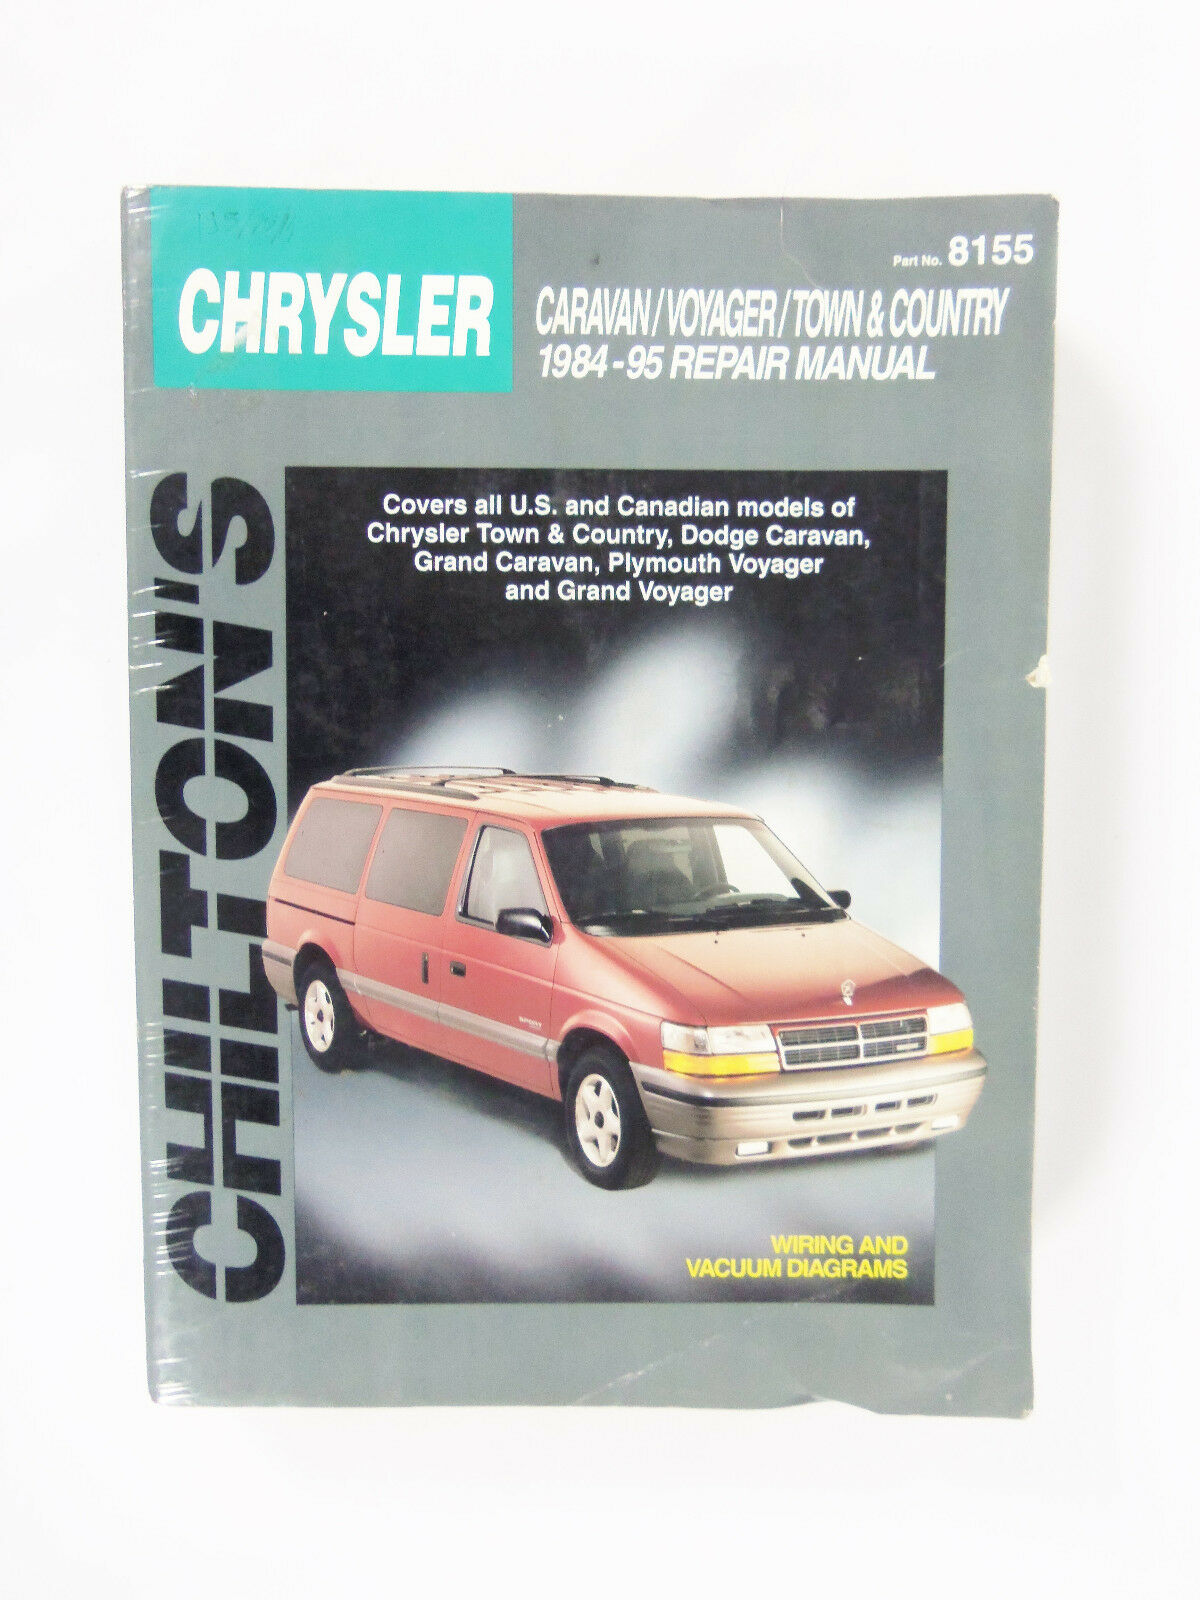 Total Car Care Repair Manuals: Dodge Caravan, Voyager, and Town and Country,  1984-95 by Chilton Automotive Editorial Staff (1998, Paperback) | eBay